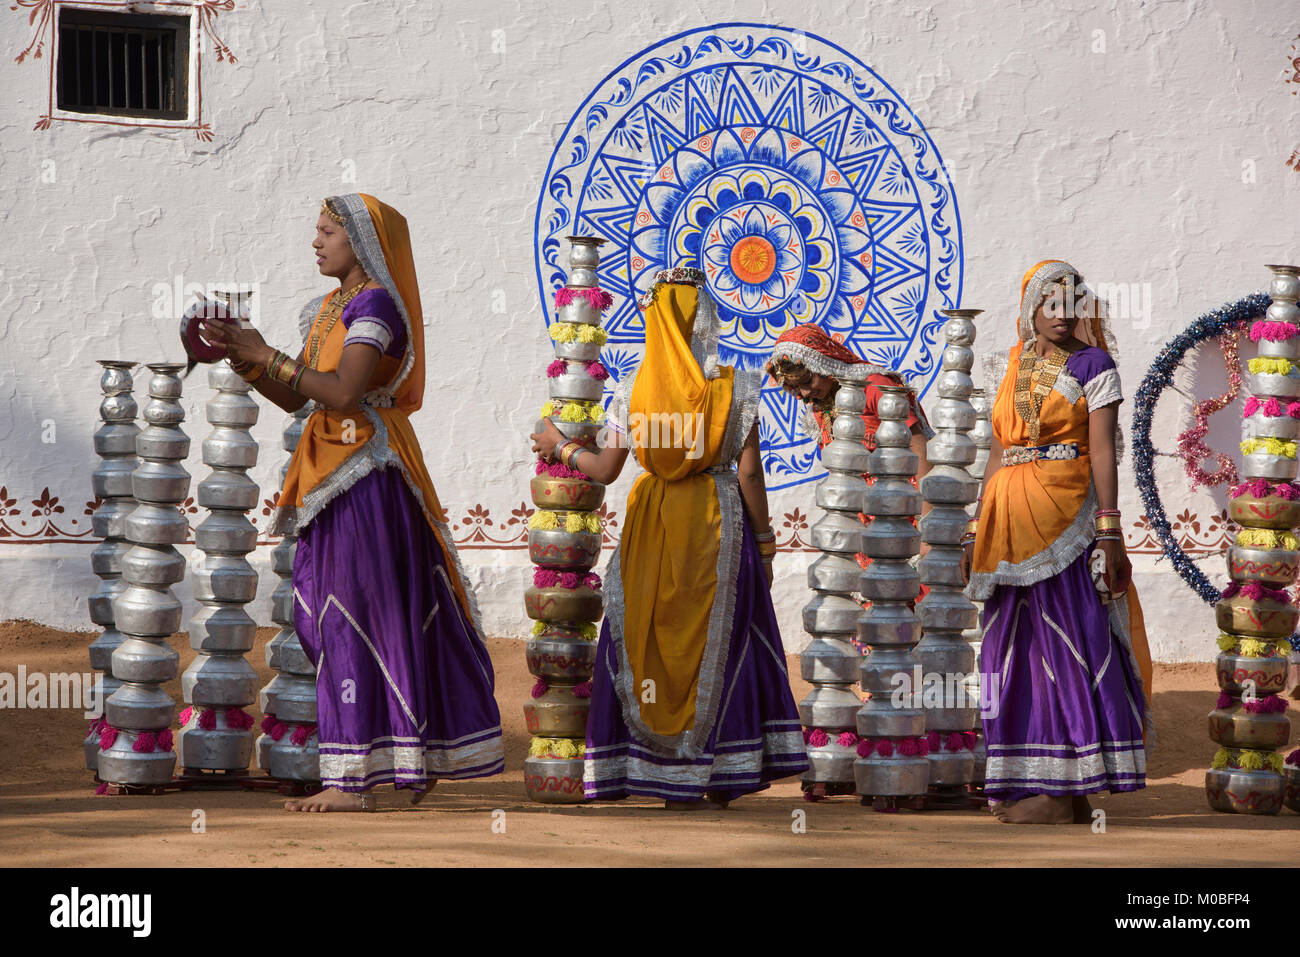 Women prepare to perform the Bhavai pot dance from Rajasthan and Gujarat, celebrating women's efforts to carry - Stock Image